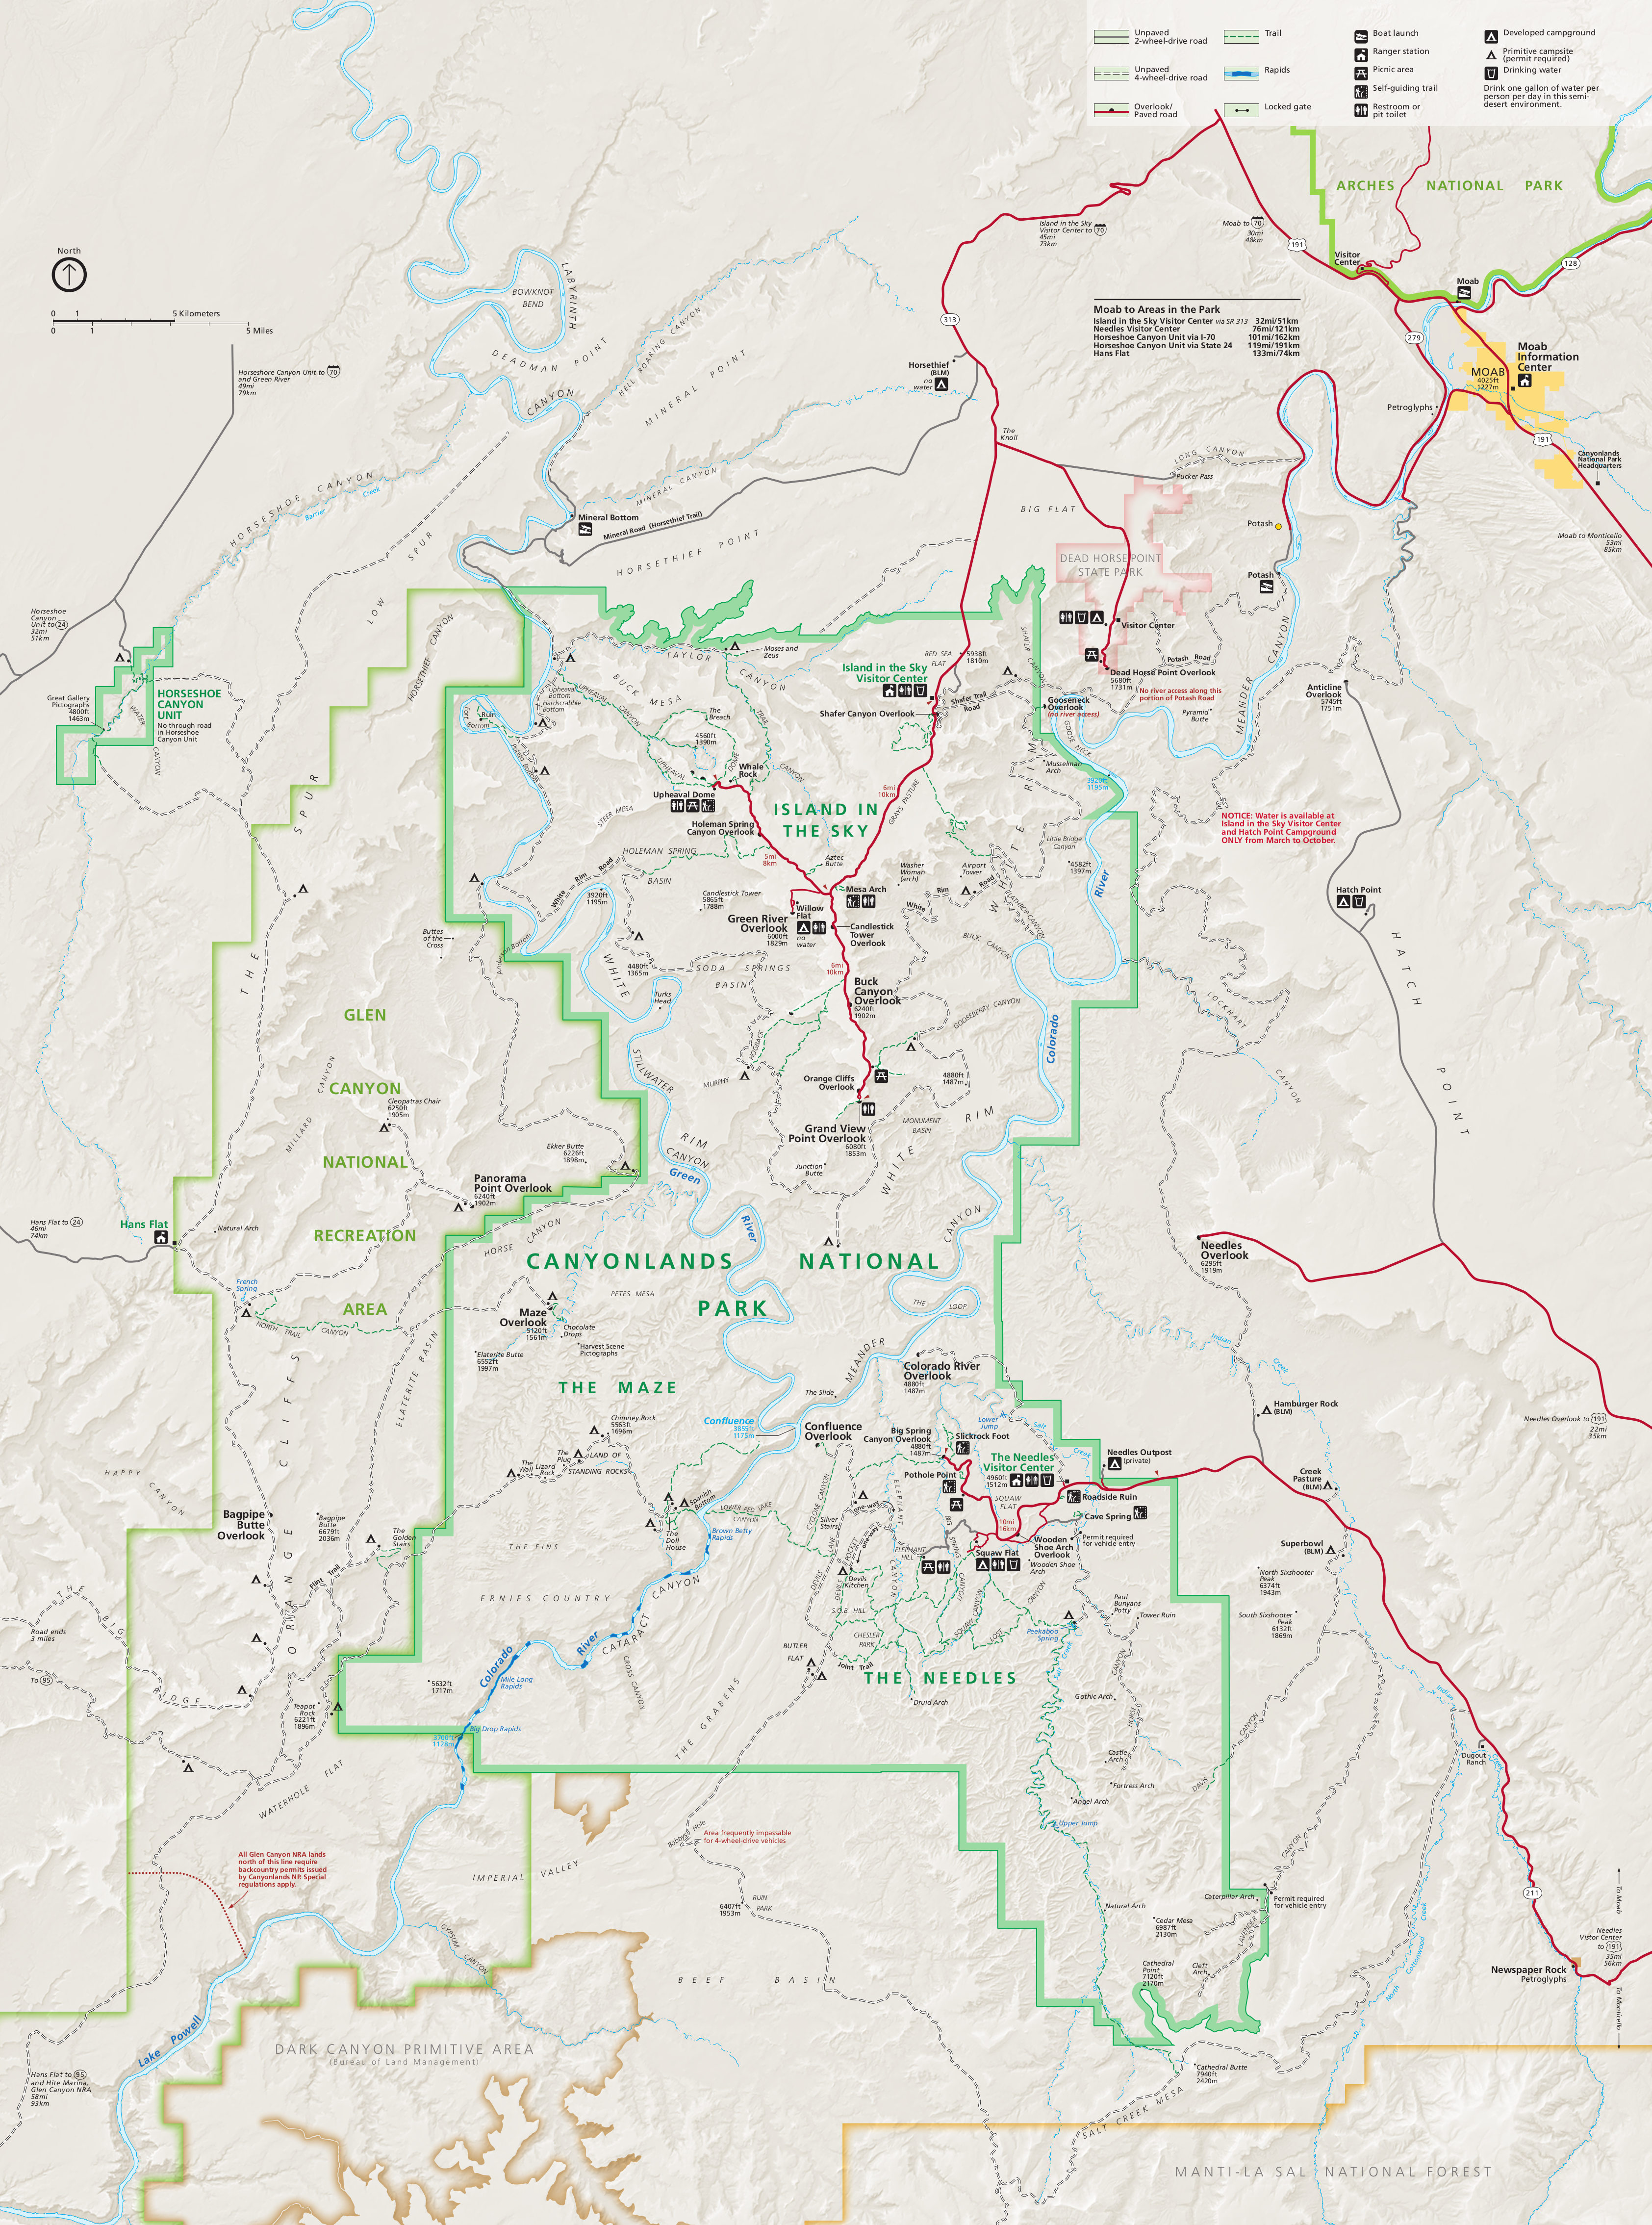 Canyonlands National Park Map Canyonlands Maps | NPMaps.  just free maps, period. Canyonlands National Park Map